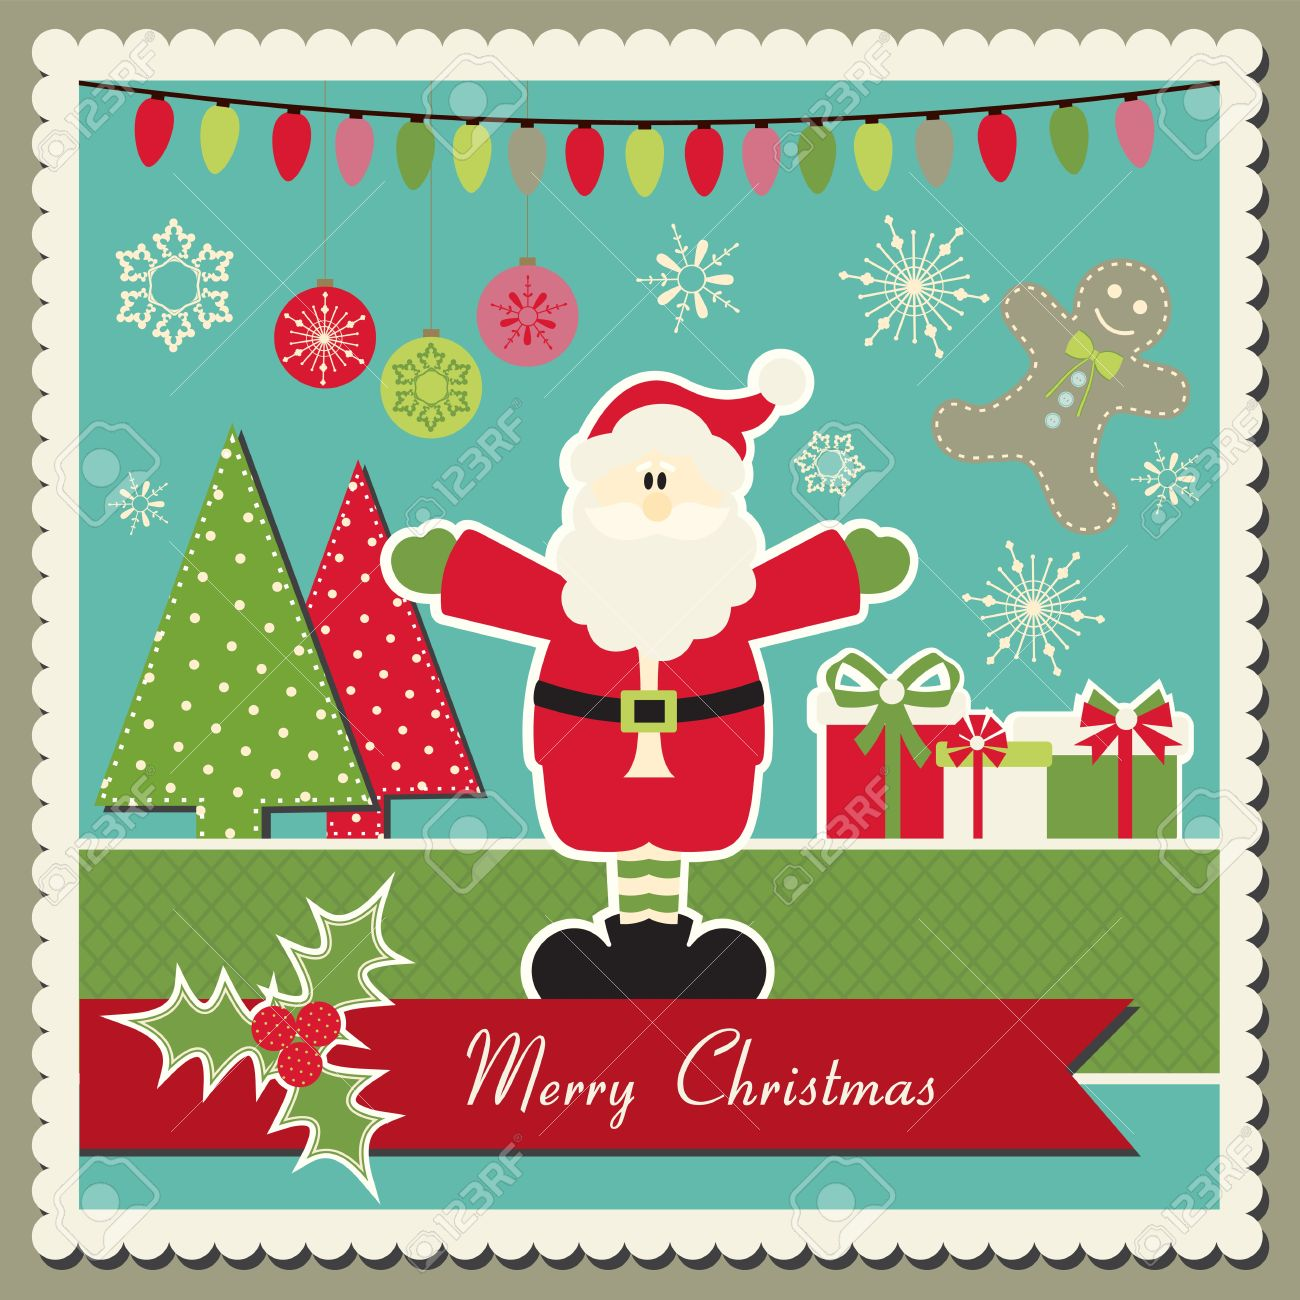 How to scrapbook christmas cards